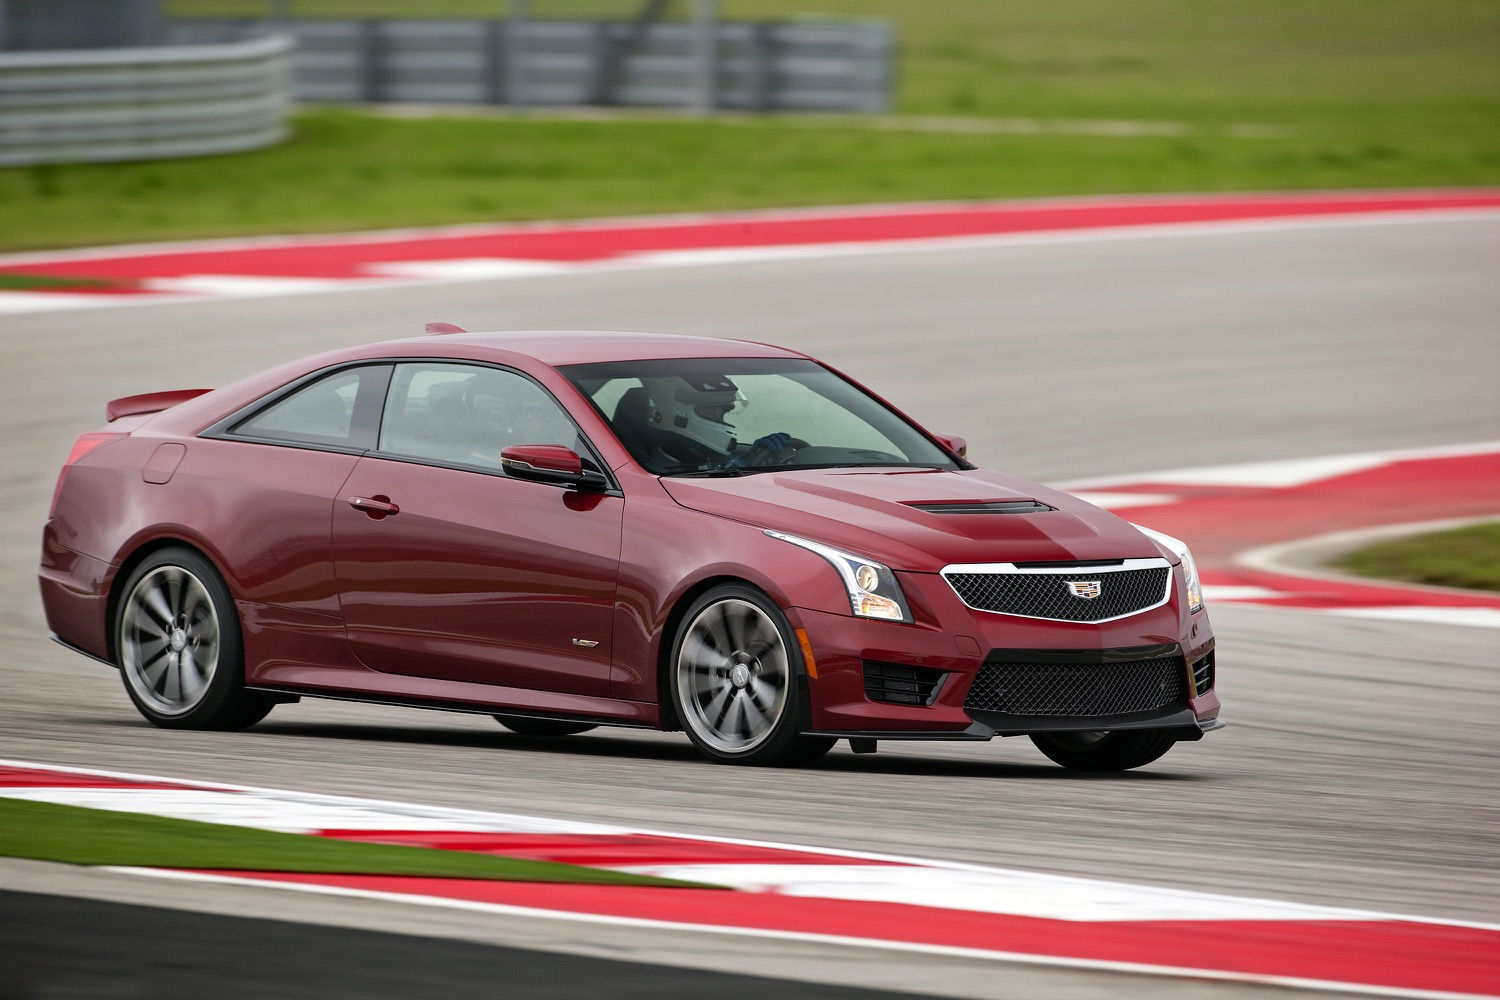 hight resolution of  did cadillac miss out by not having a v8 in the ats v or is the ats v better off with the twin turbo v6 lf4 let us know in the comments section